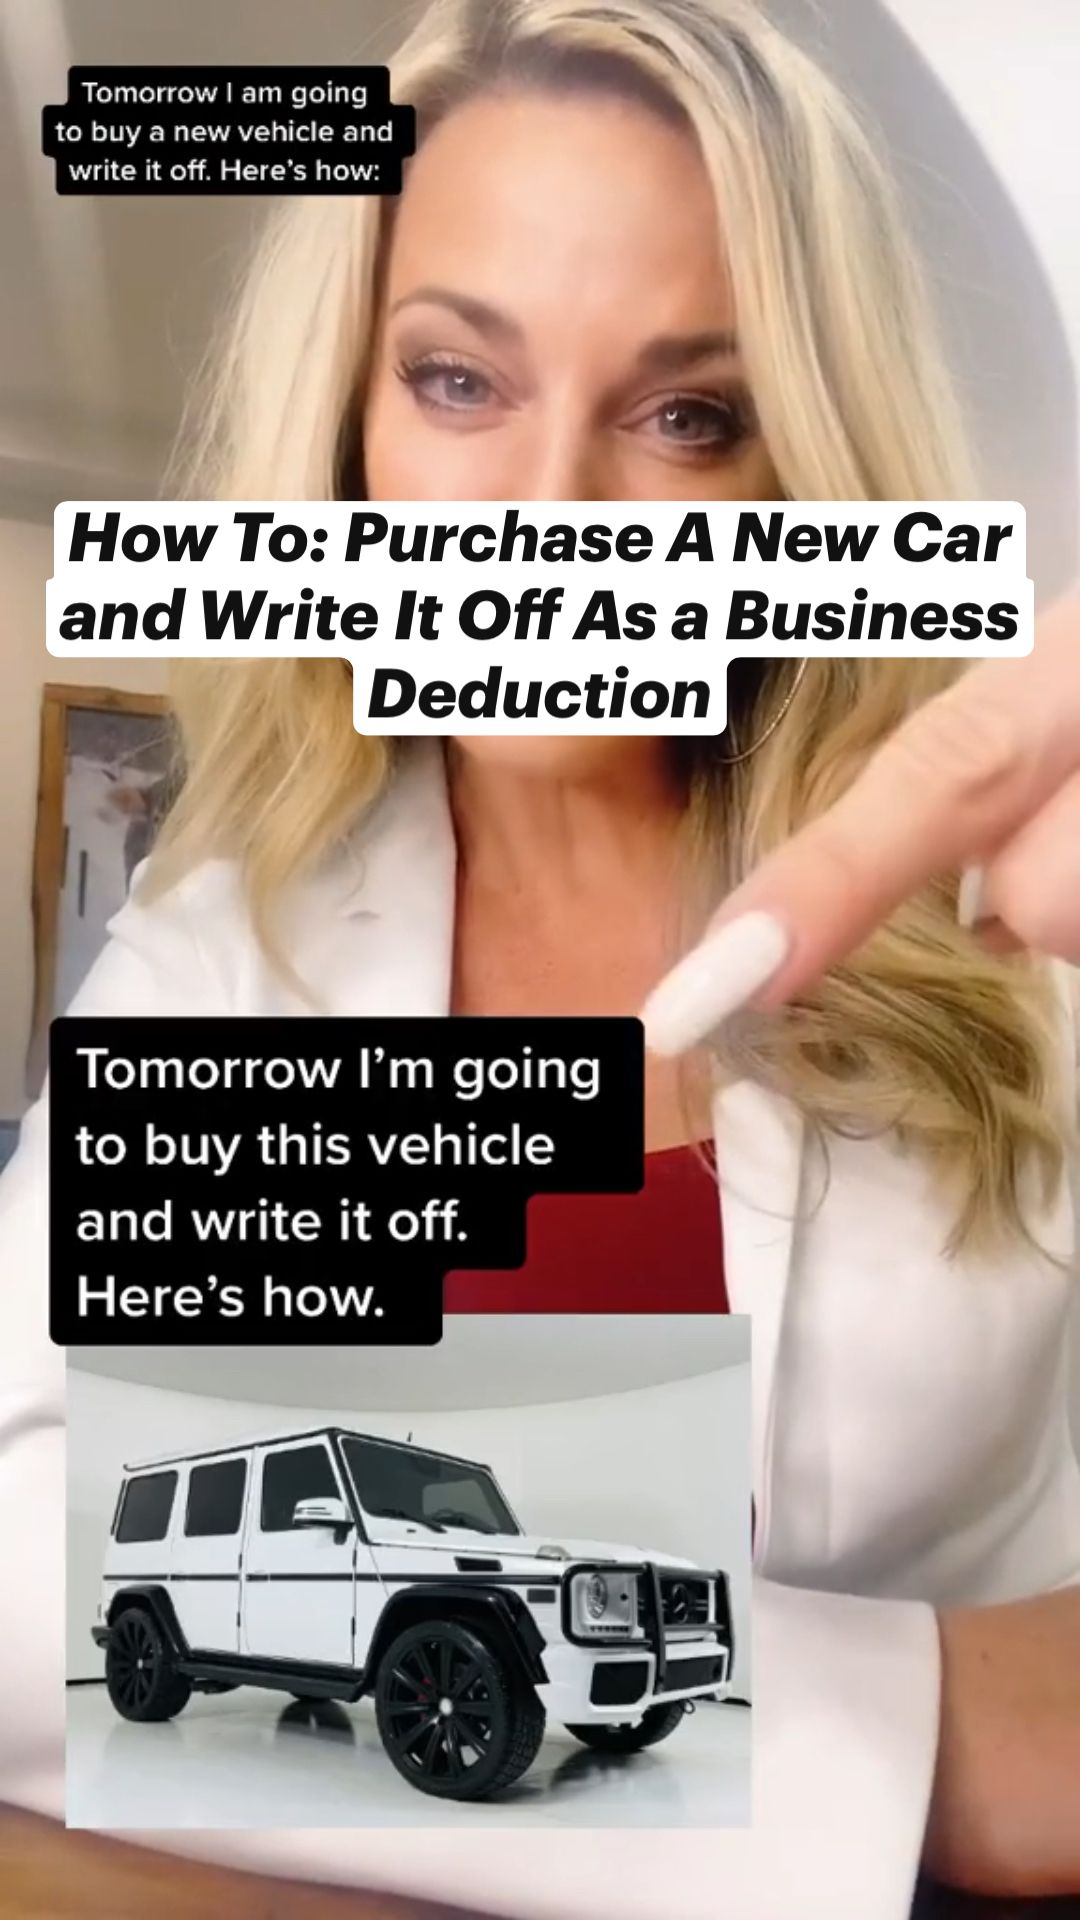 Purchase A New Car and Write It Off As a Business Deduction